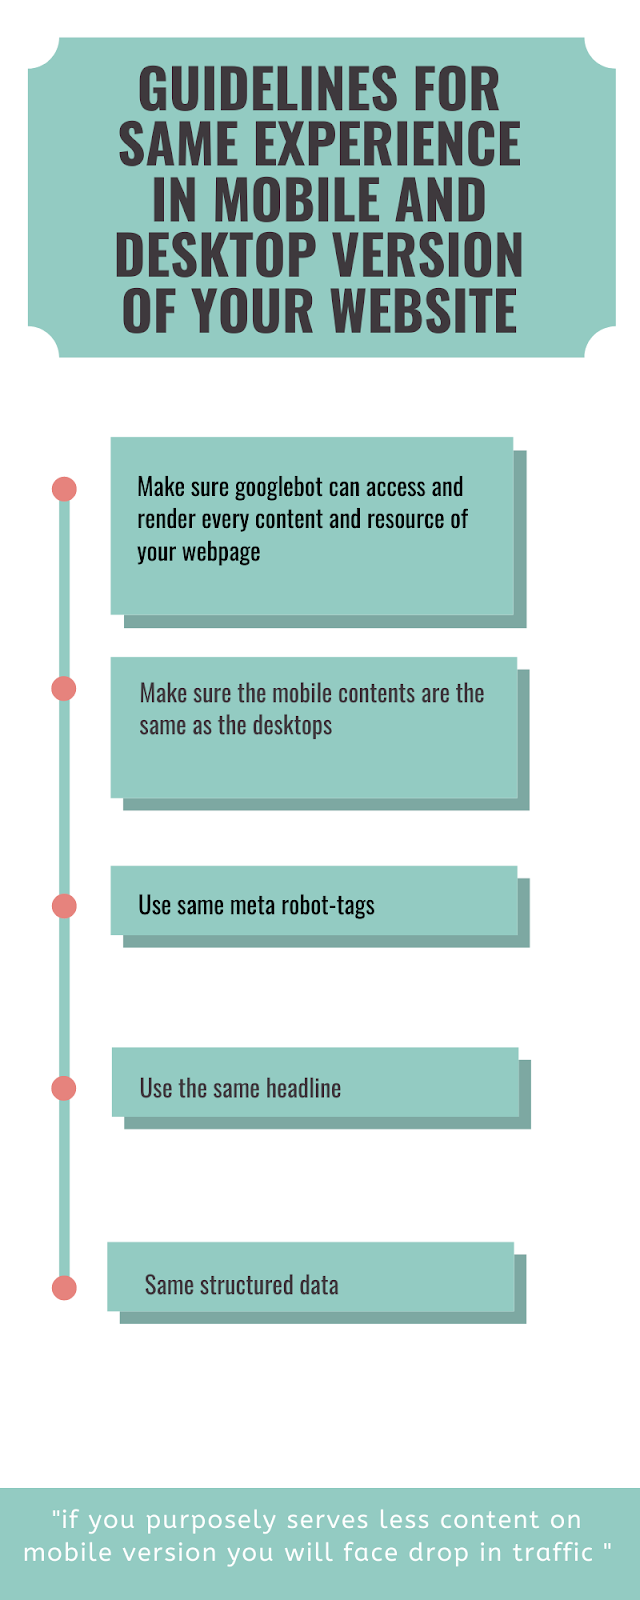 guidelines for same experience of a website in mobile and desktop